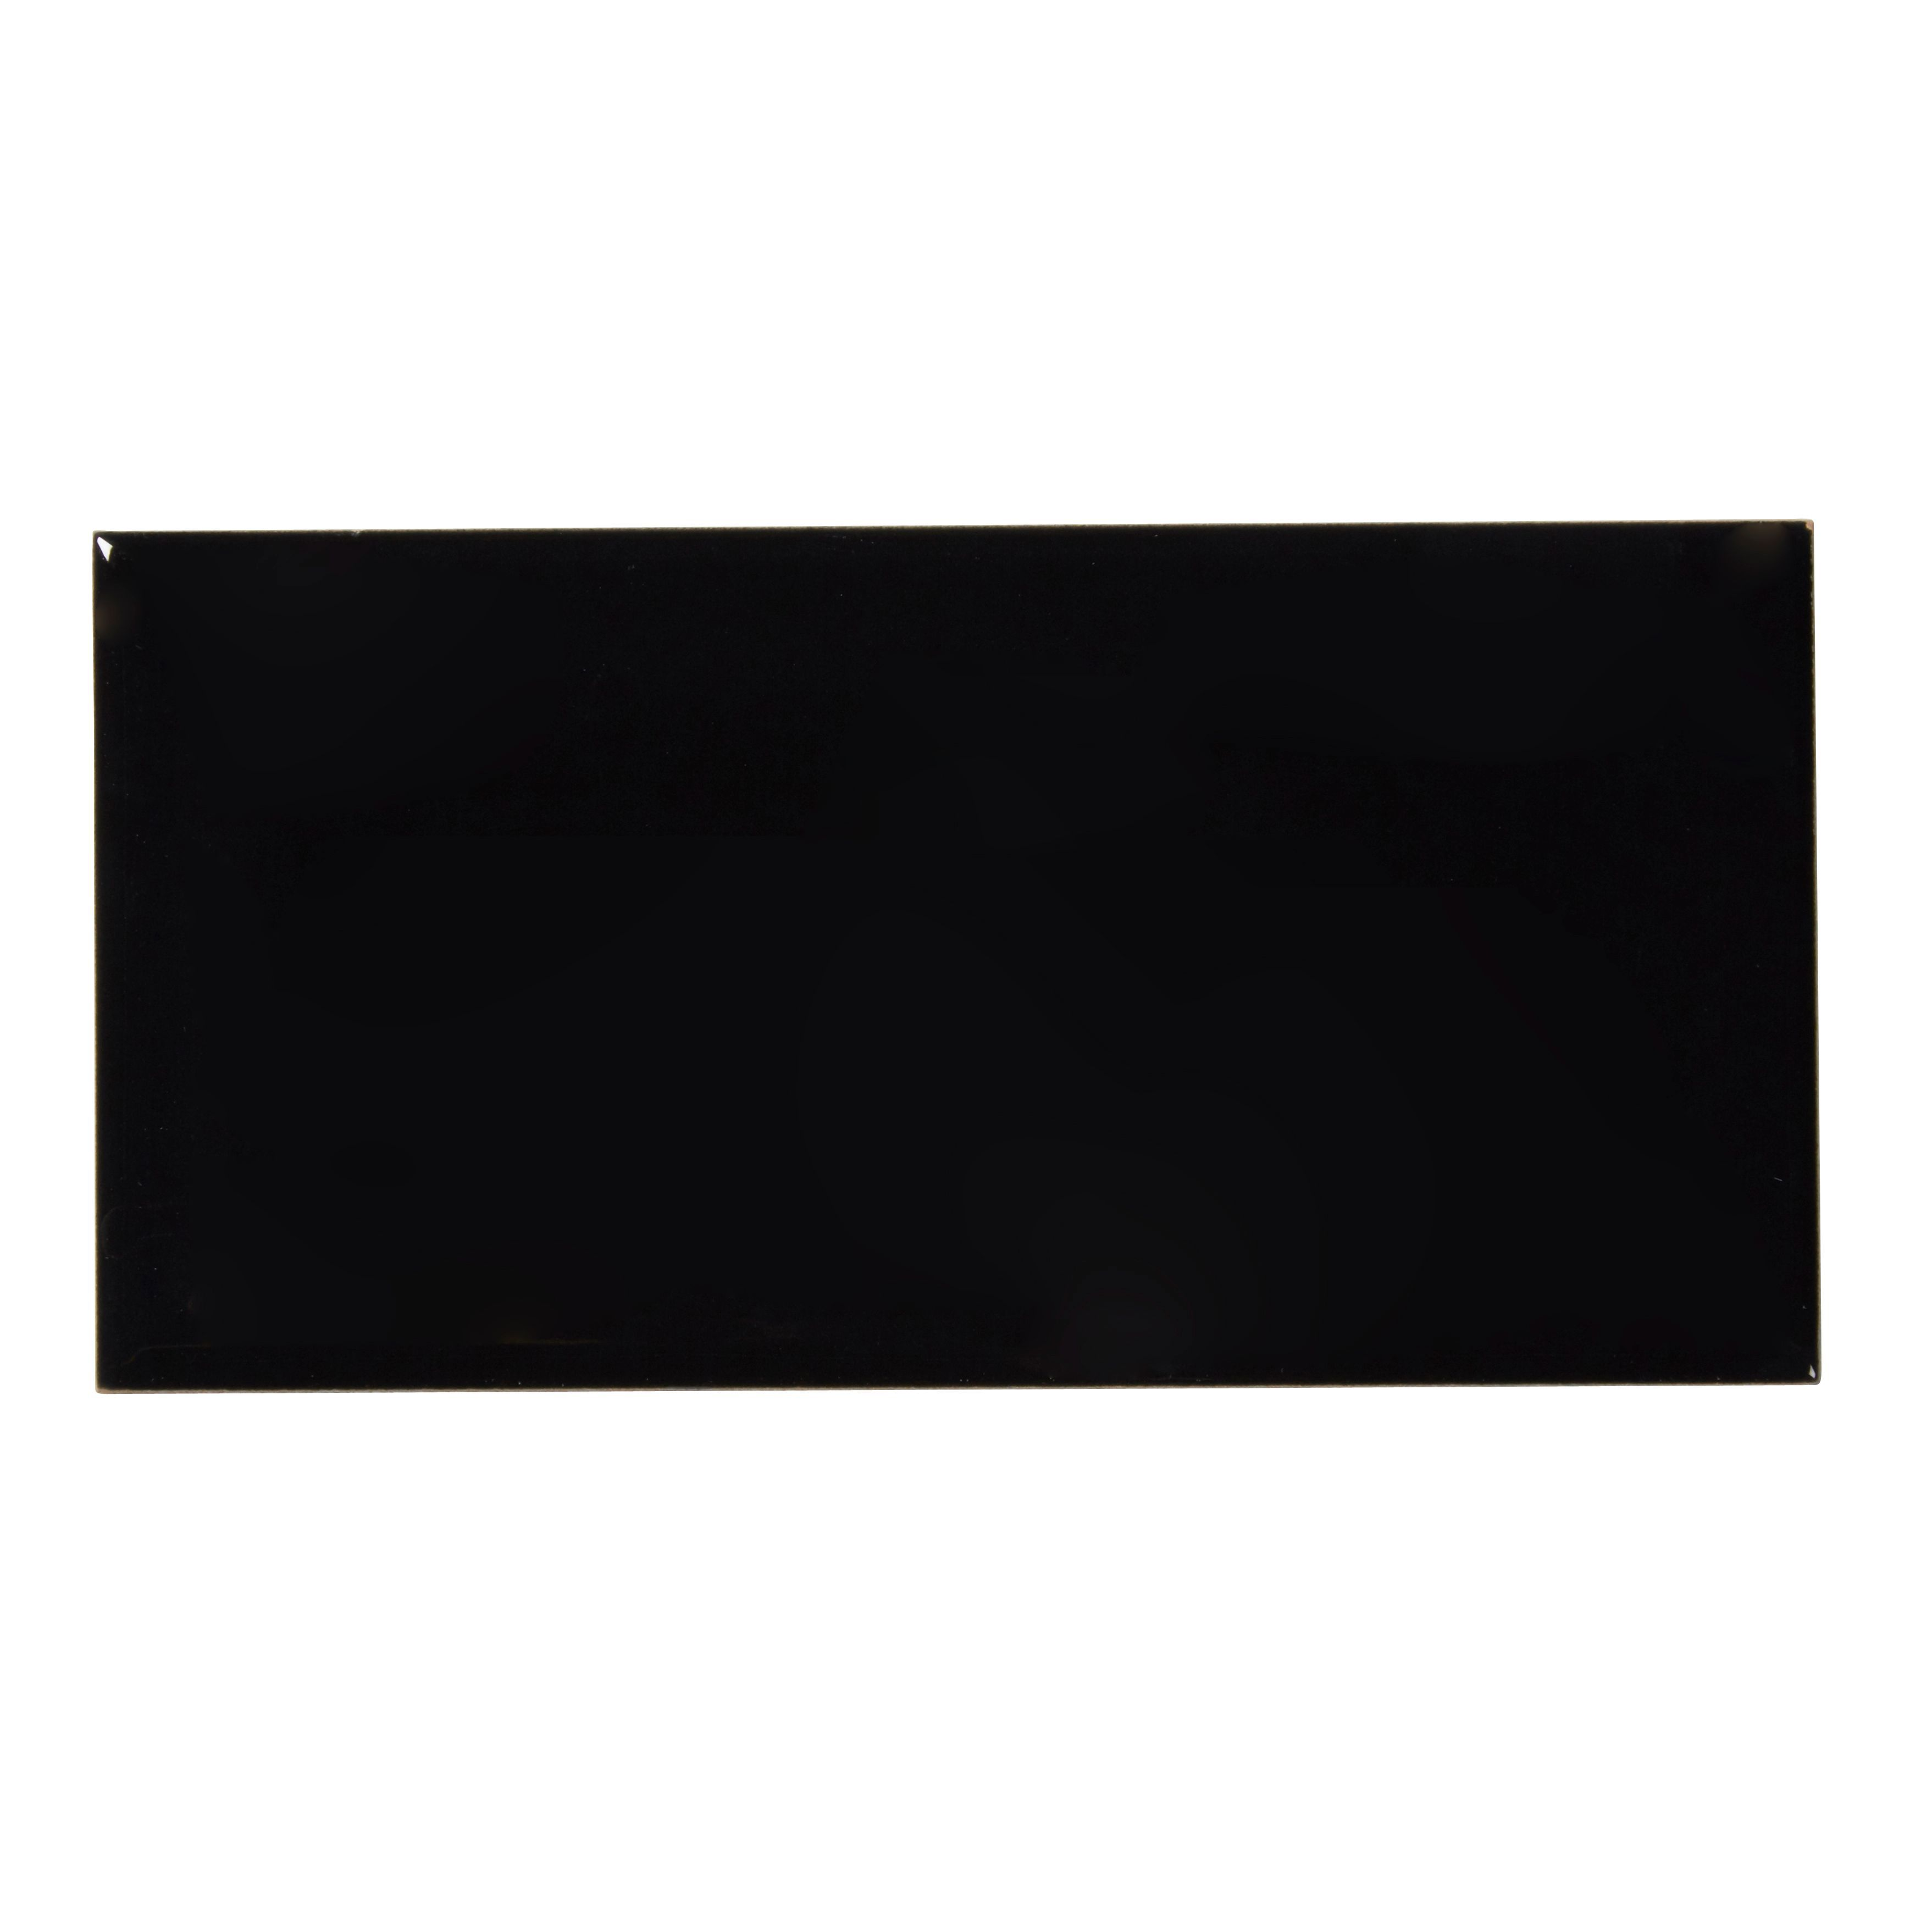 Diy at bq trentie black gloss ceramic wall tile pack of 40 l200mm dailygadgetfo Image collections